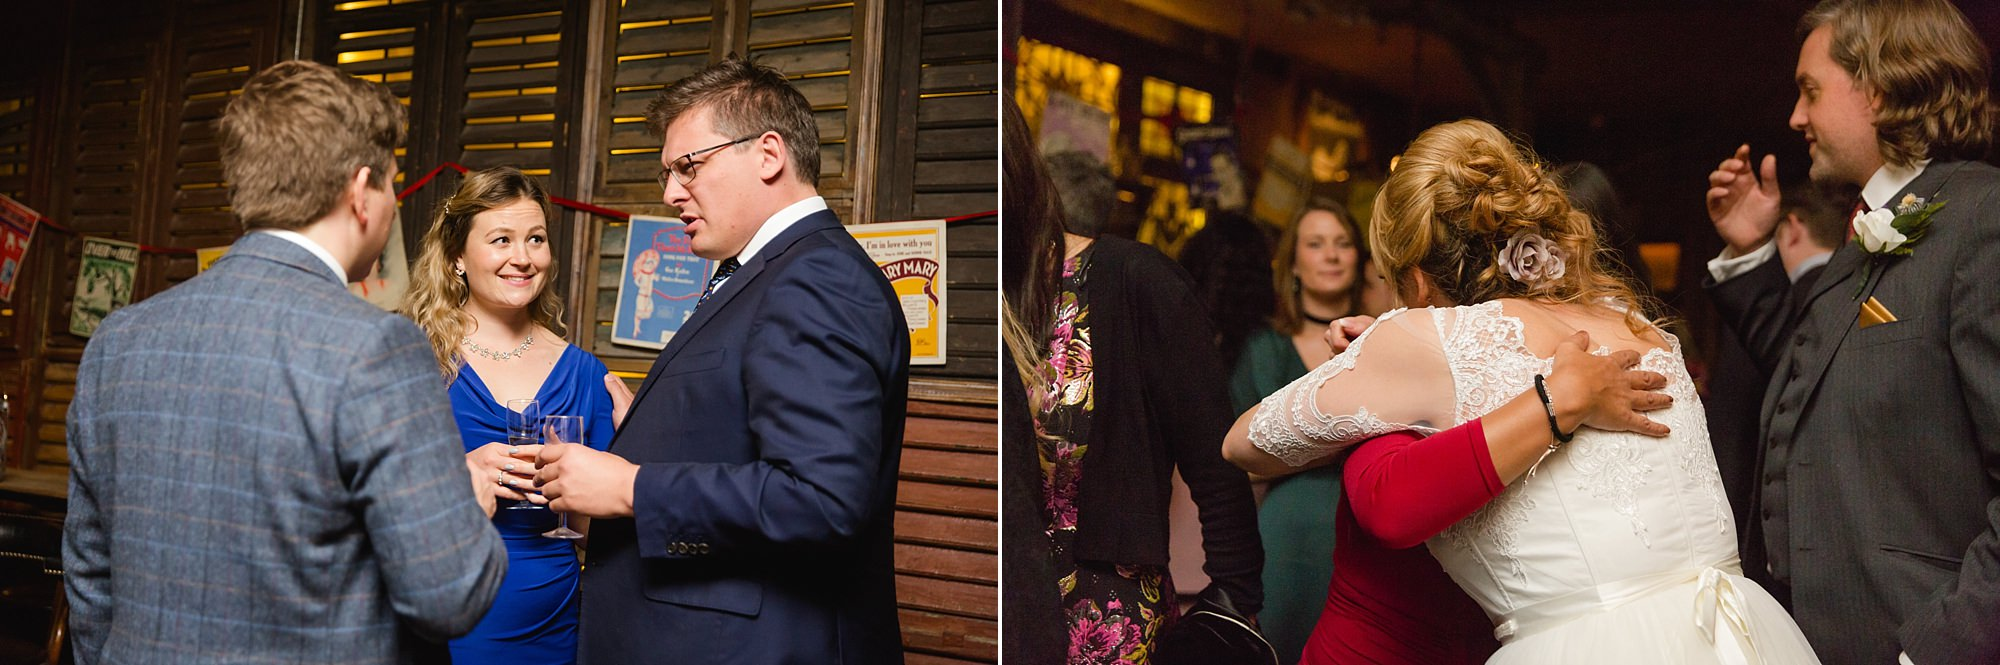 Old Marylebone Town Hall wedding photography chatting guests